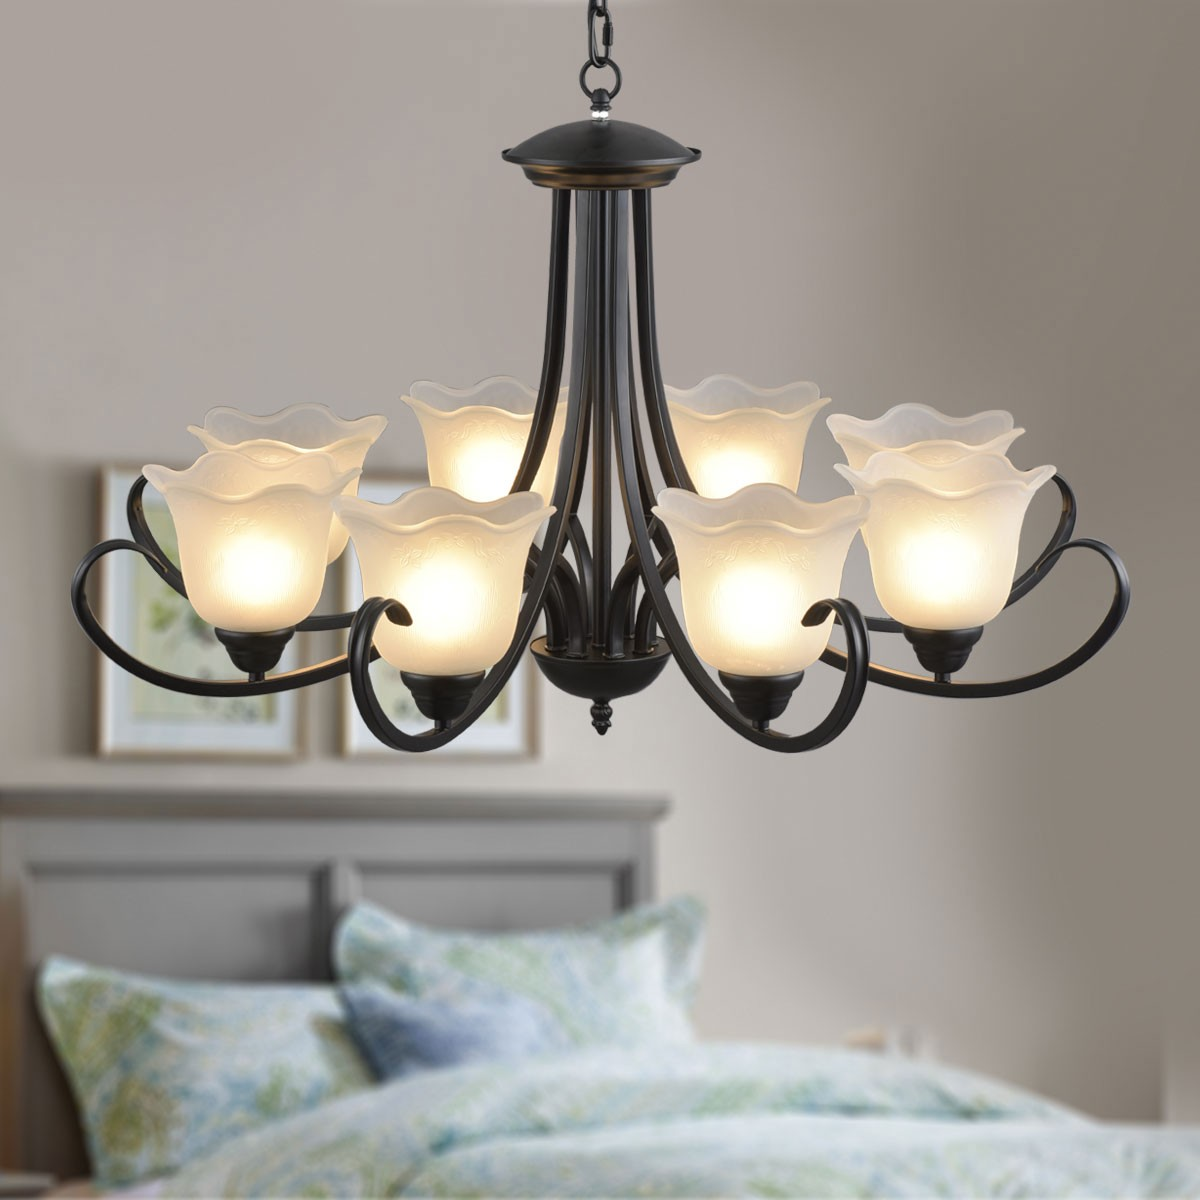 8 Light Black Wrought Iron Chandelier With Gl Shades Dk 8019